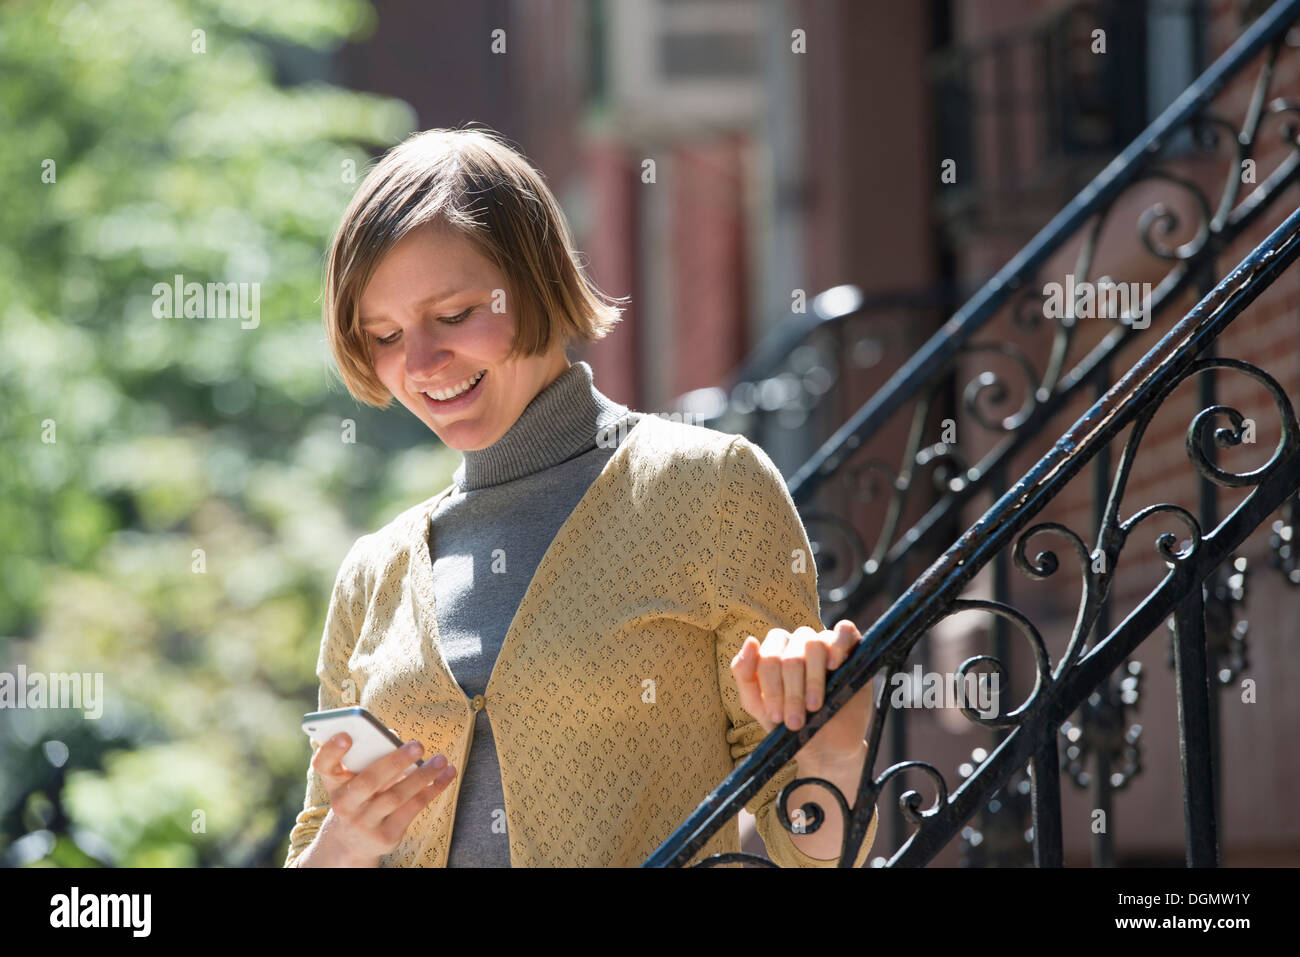 City. A woman on steps outside a townhouse, checking her smart phone. - Stock Image